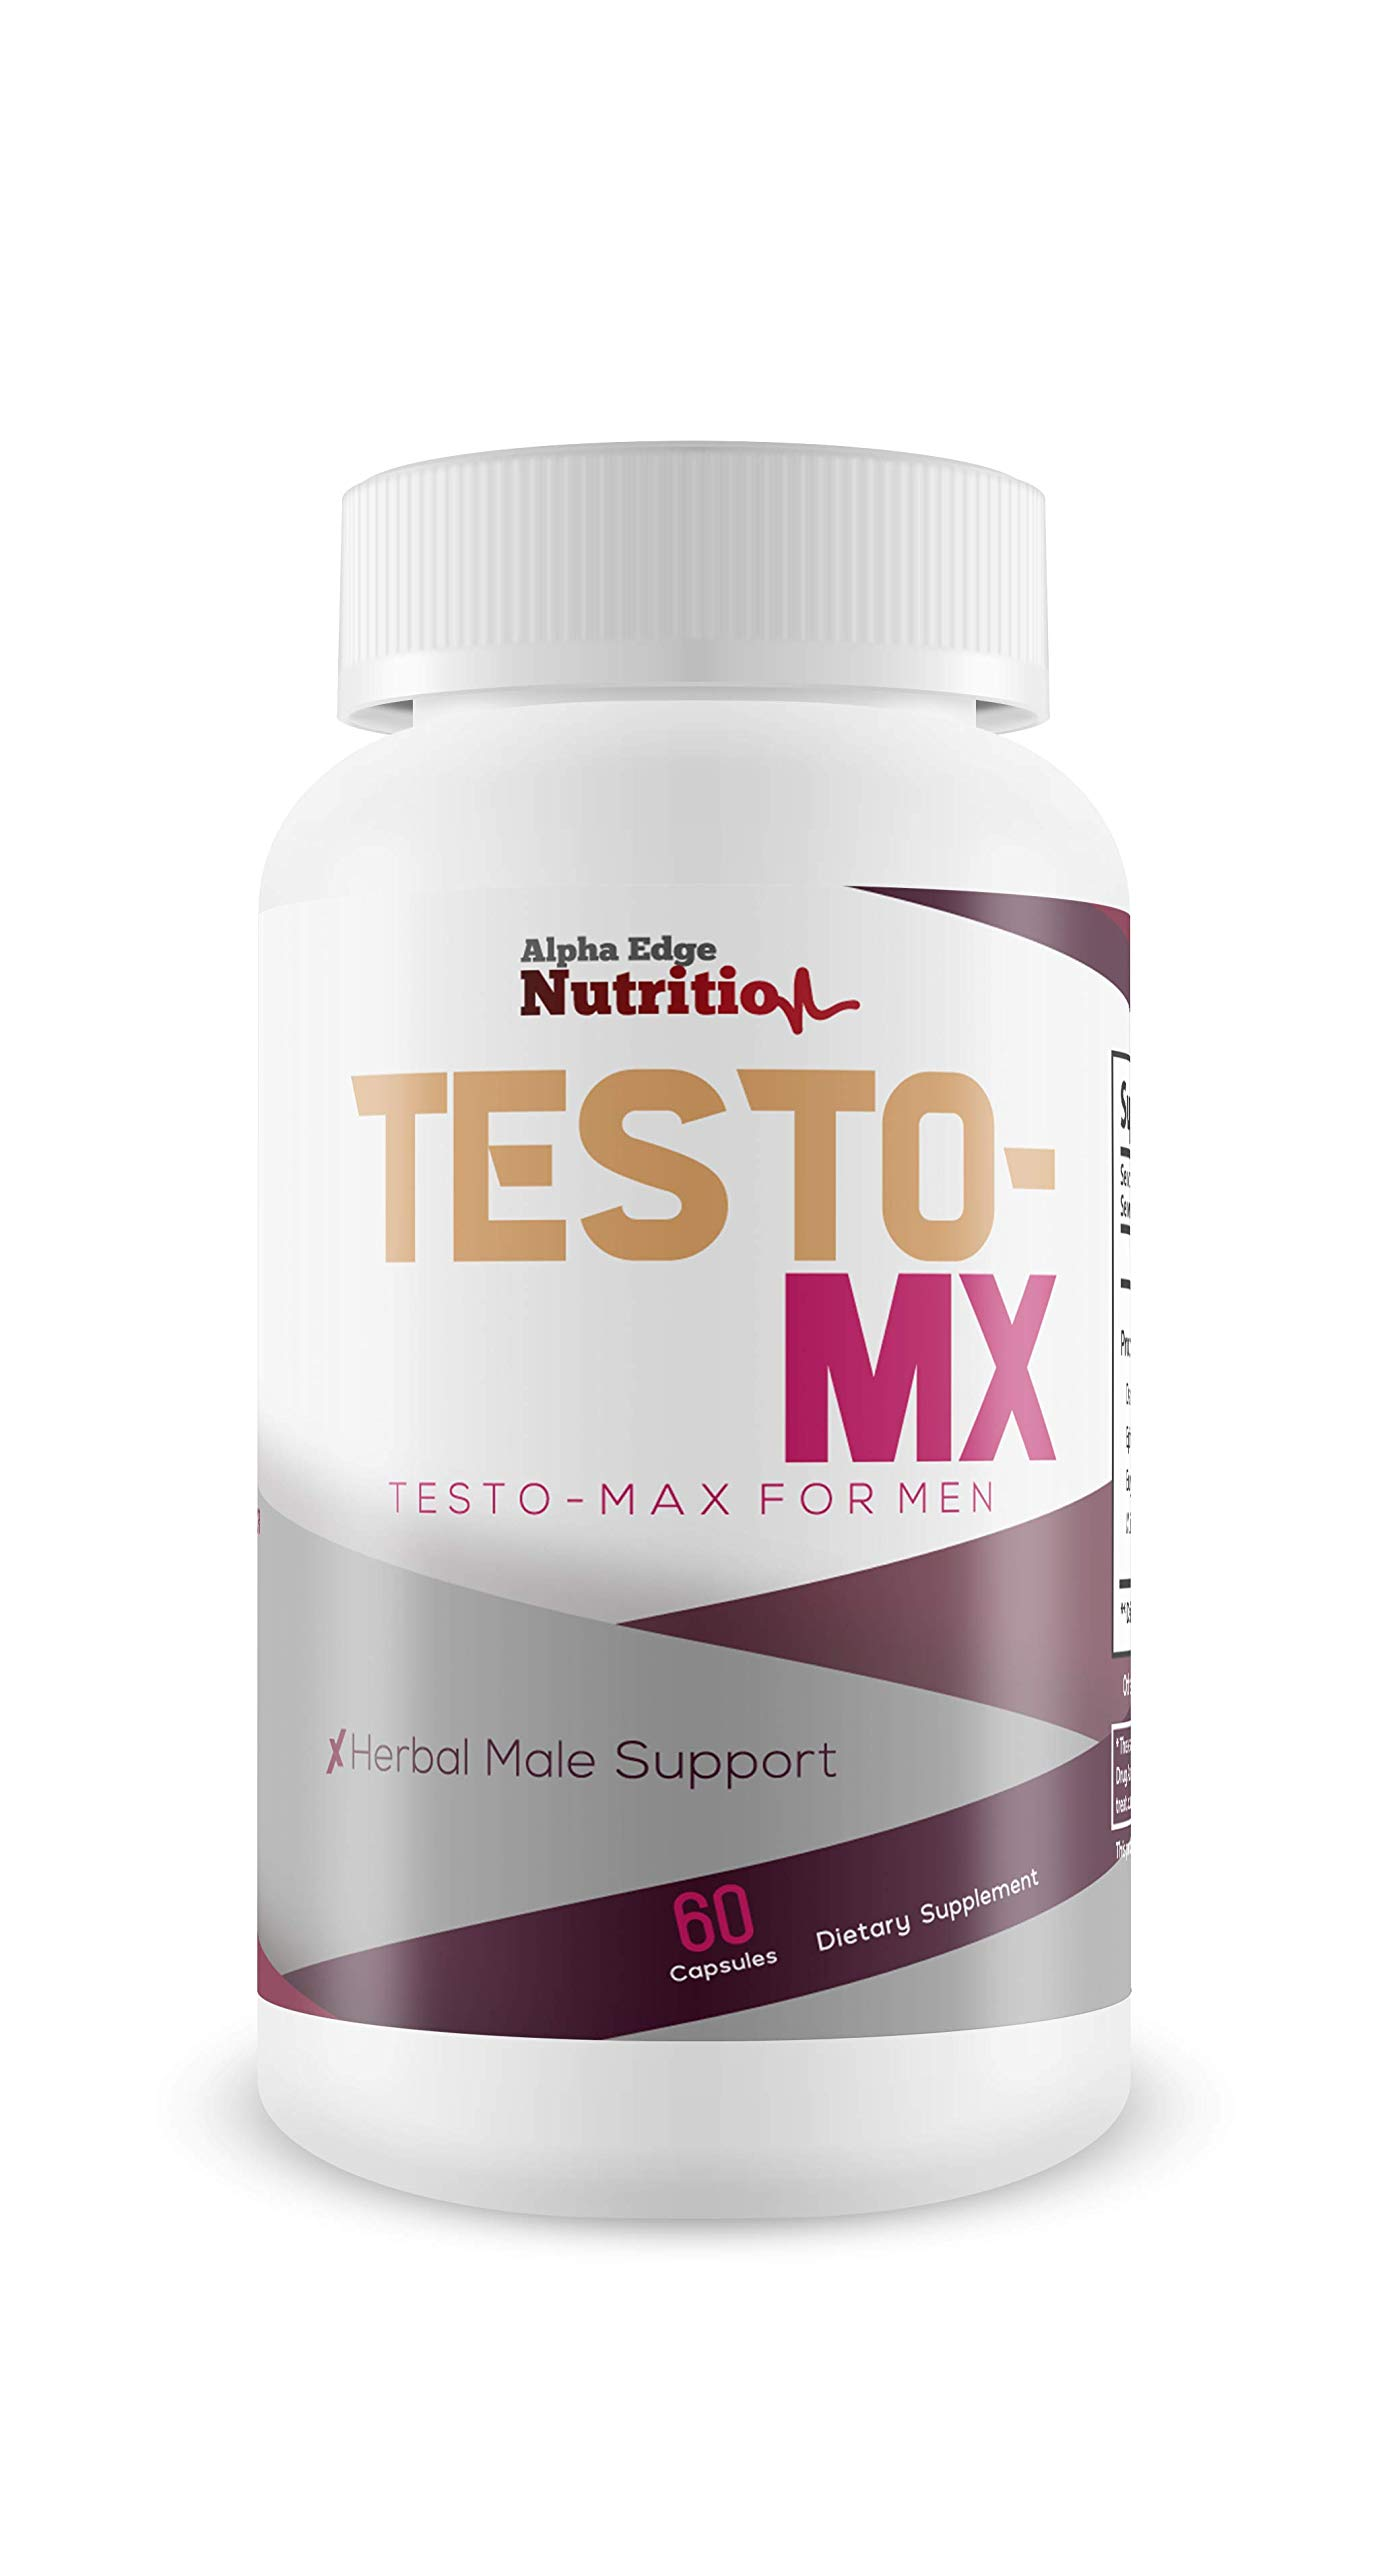 Testo MX - Testo Max for Men - Return Energy, Youth, and Vitality - Combat Testosterone Loss with This Herbal Male Blend - Support Increased Testosterone Production with This Powerful Herbal Blend!